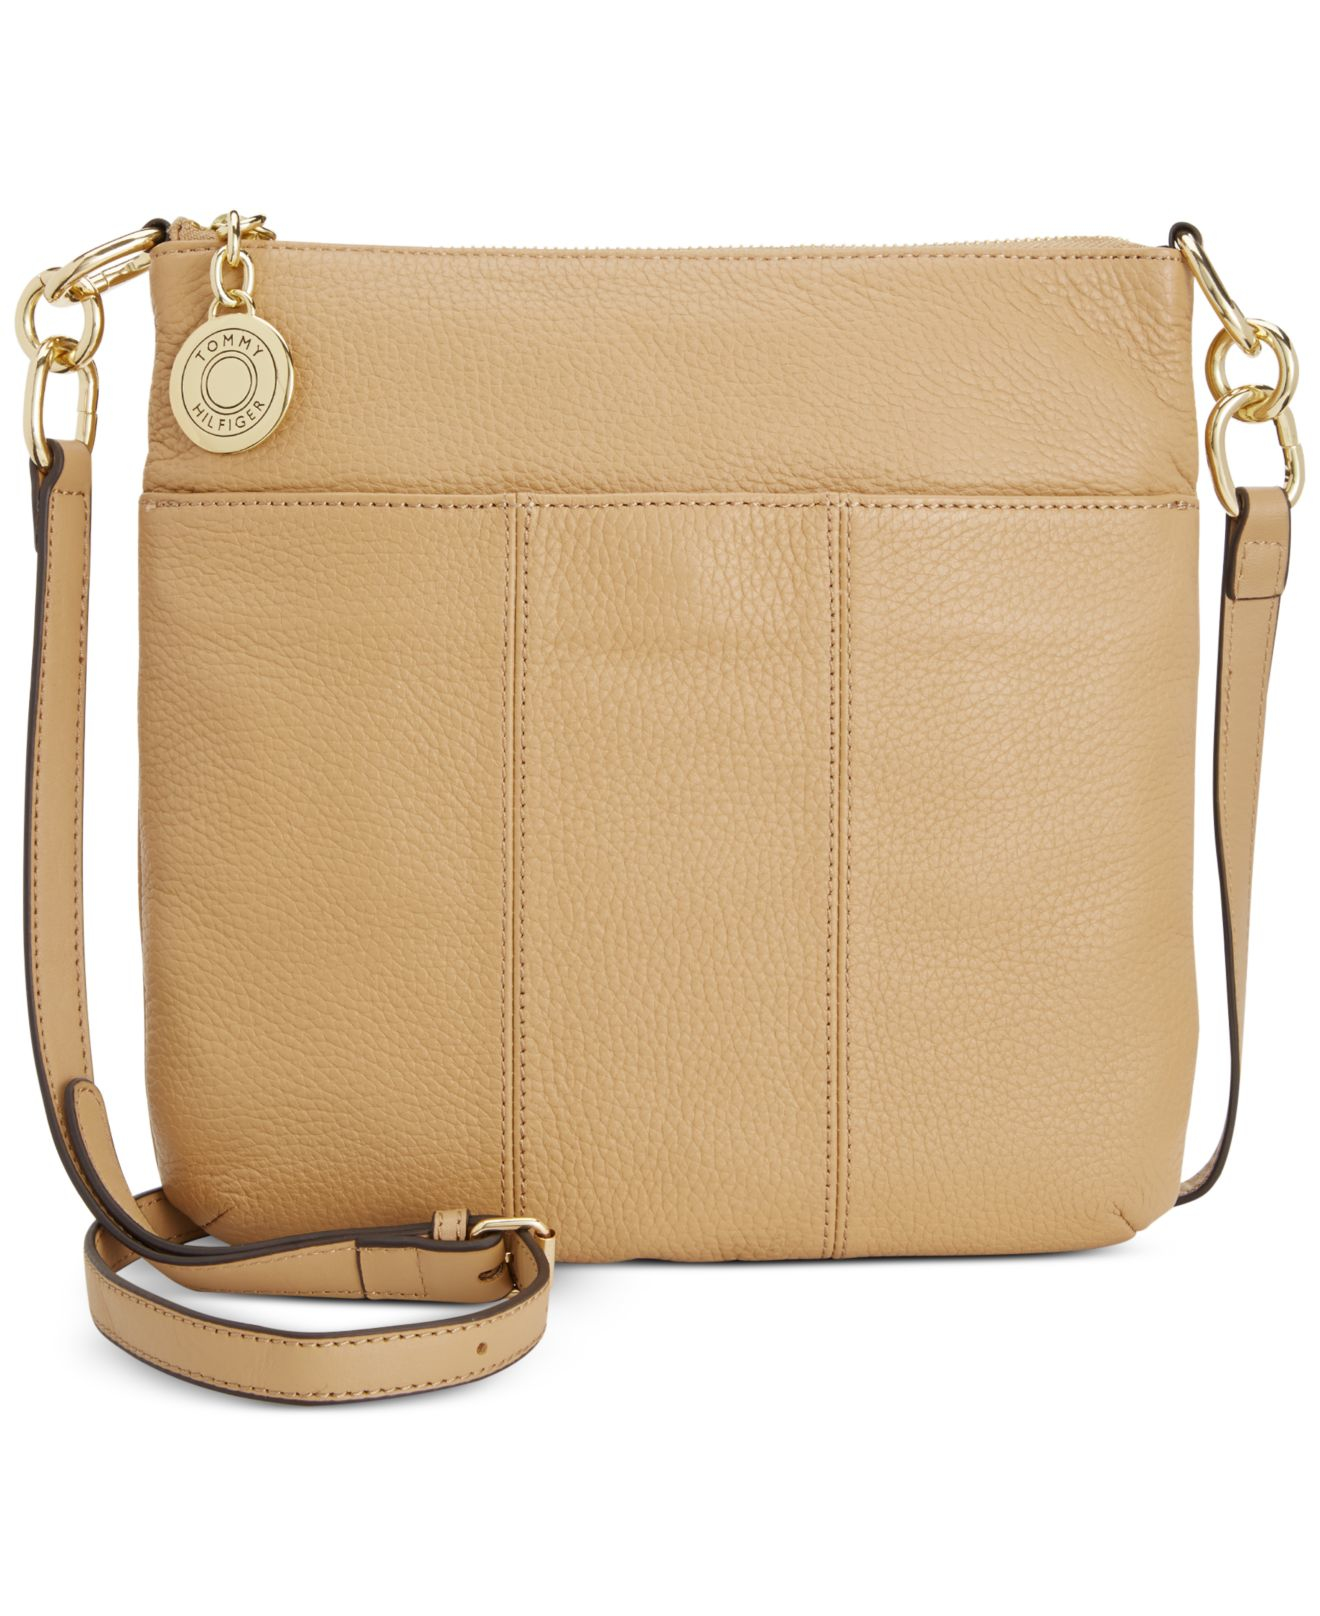 eea13472208 Tommy Hilfiger Th Signature Pebble Leather Crossbody in Brown - Lyst